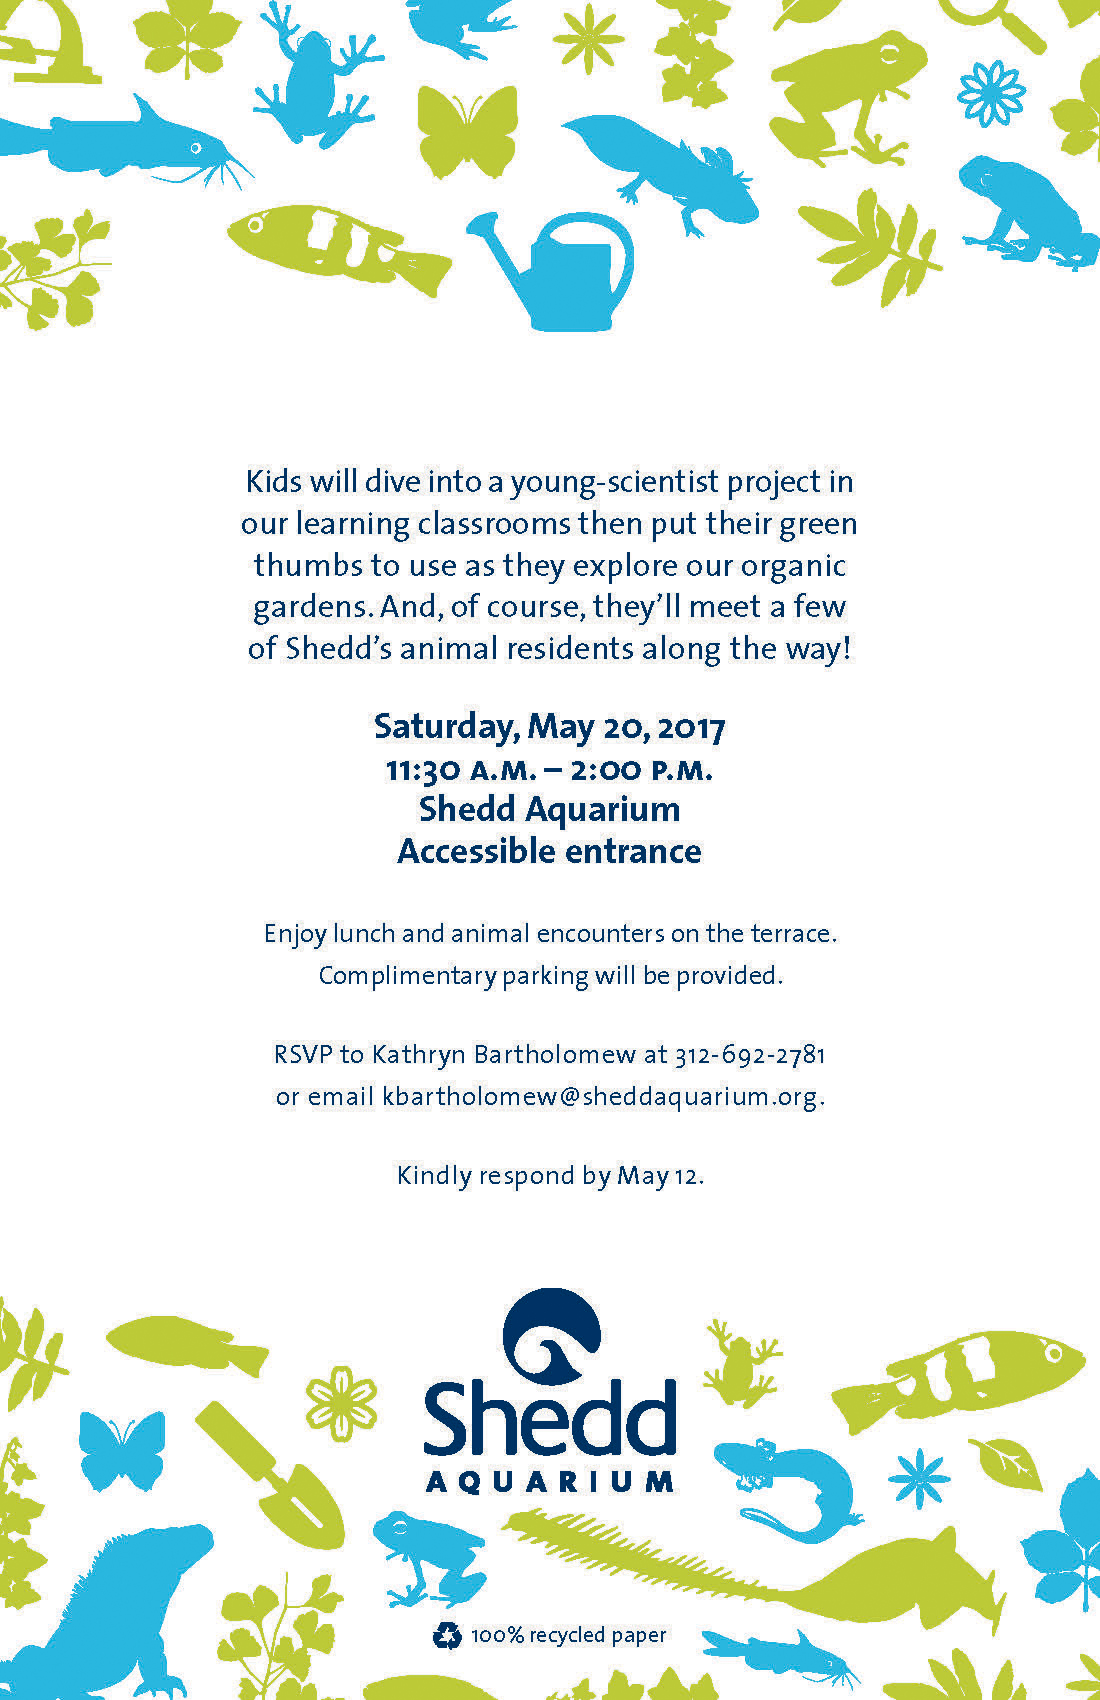 The back of an invitation, with information about the time, place, and format of the event. Small animal icons in bright green and blue form cheery borders along the top and bottom edges of the invitation.